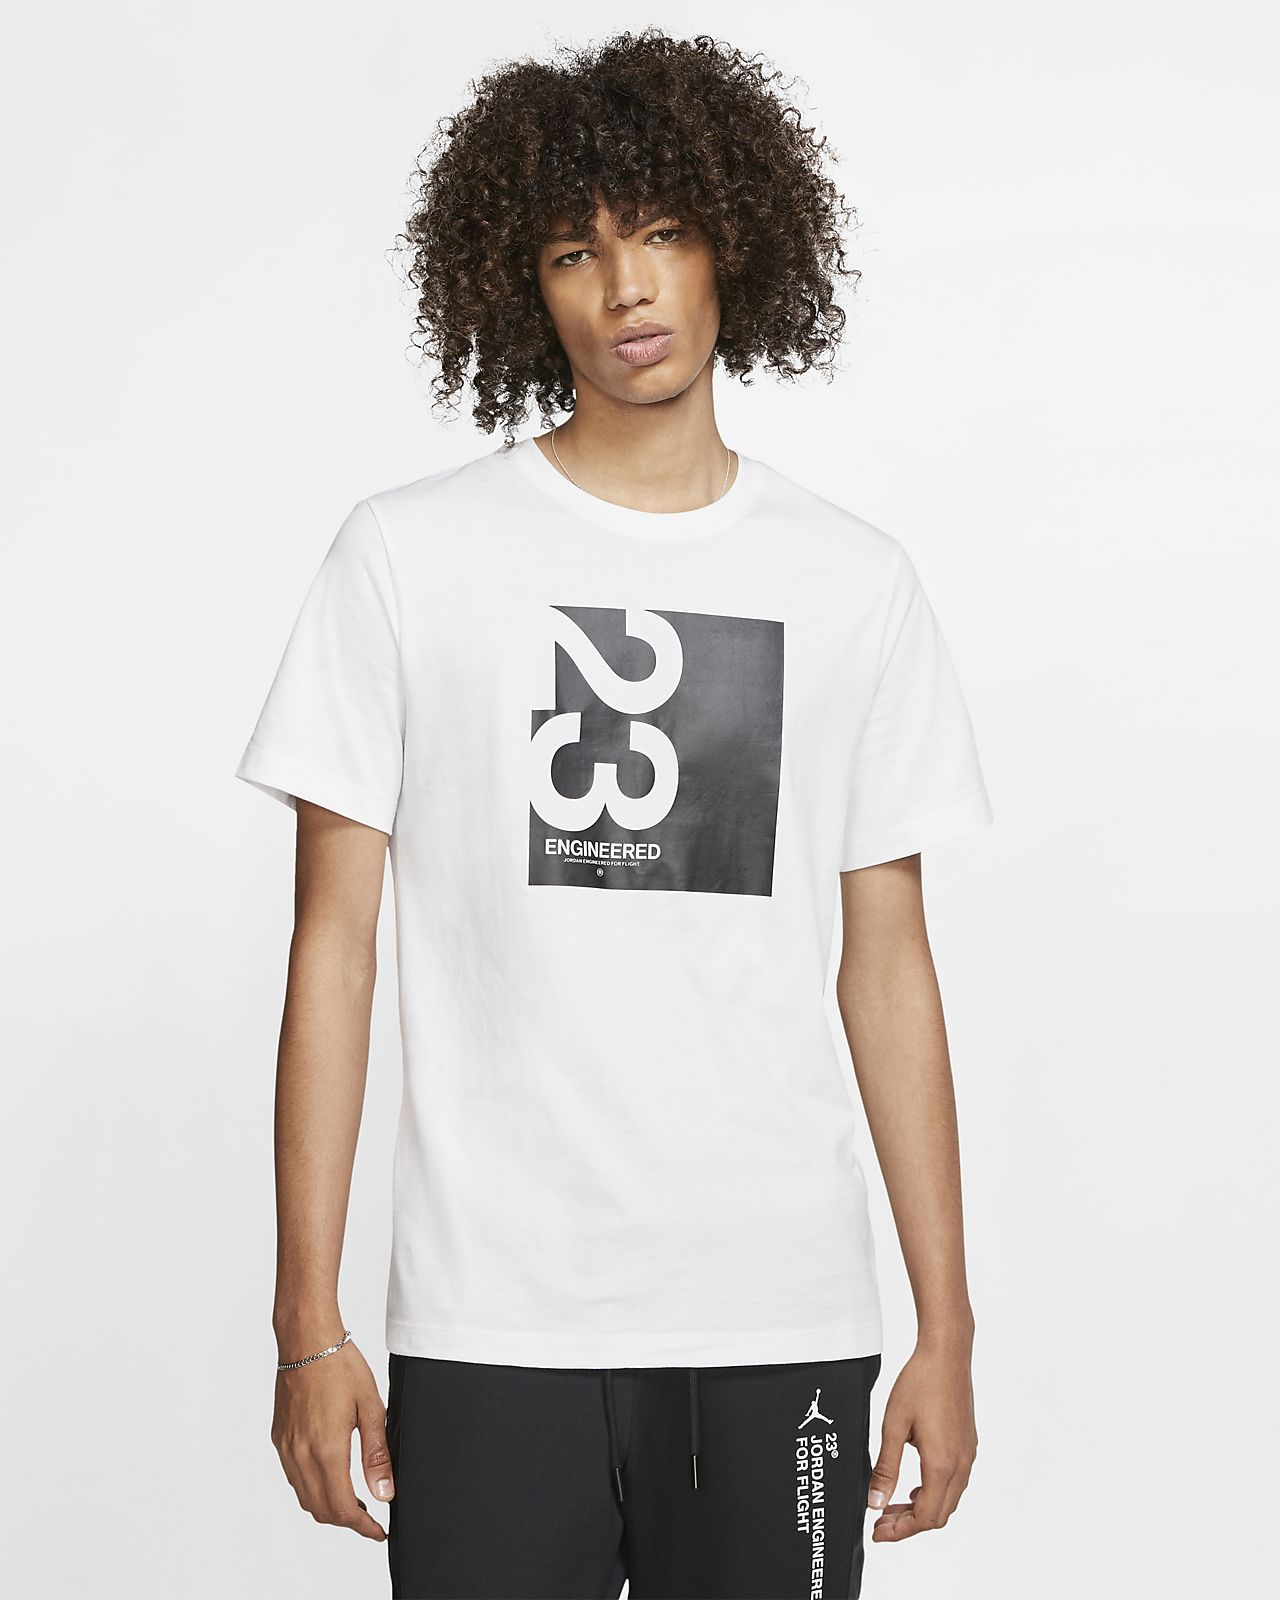 Jordan 23 Engineered Men's T-Shirt